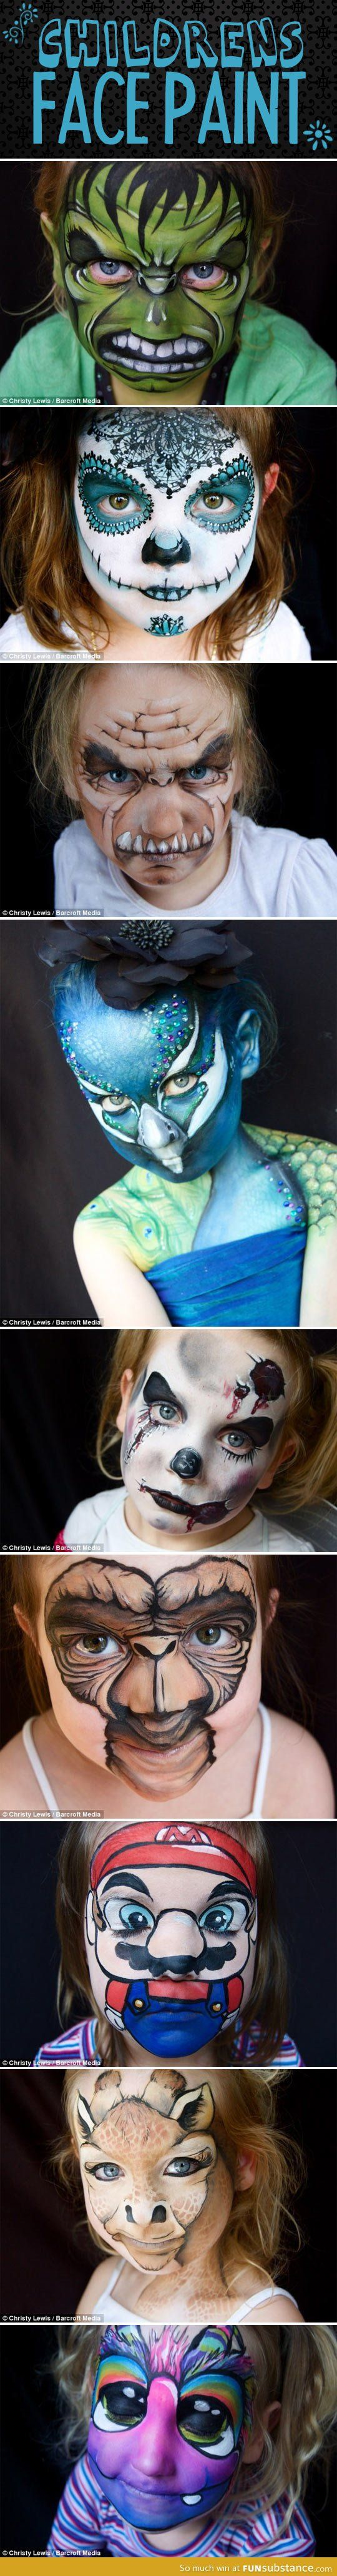 Amazing Children's Face Painting (9 pics) | Mommy Has A Potty MouthMommy Has A Potty Mouth